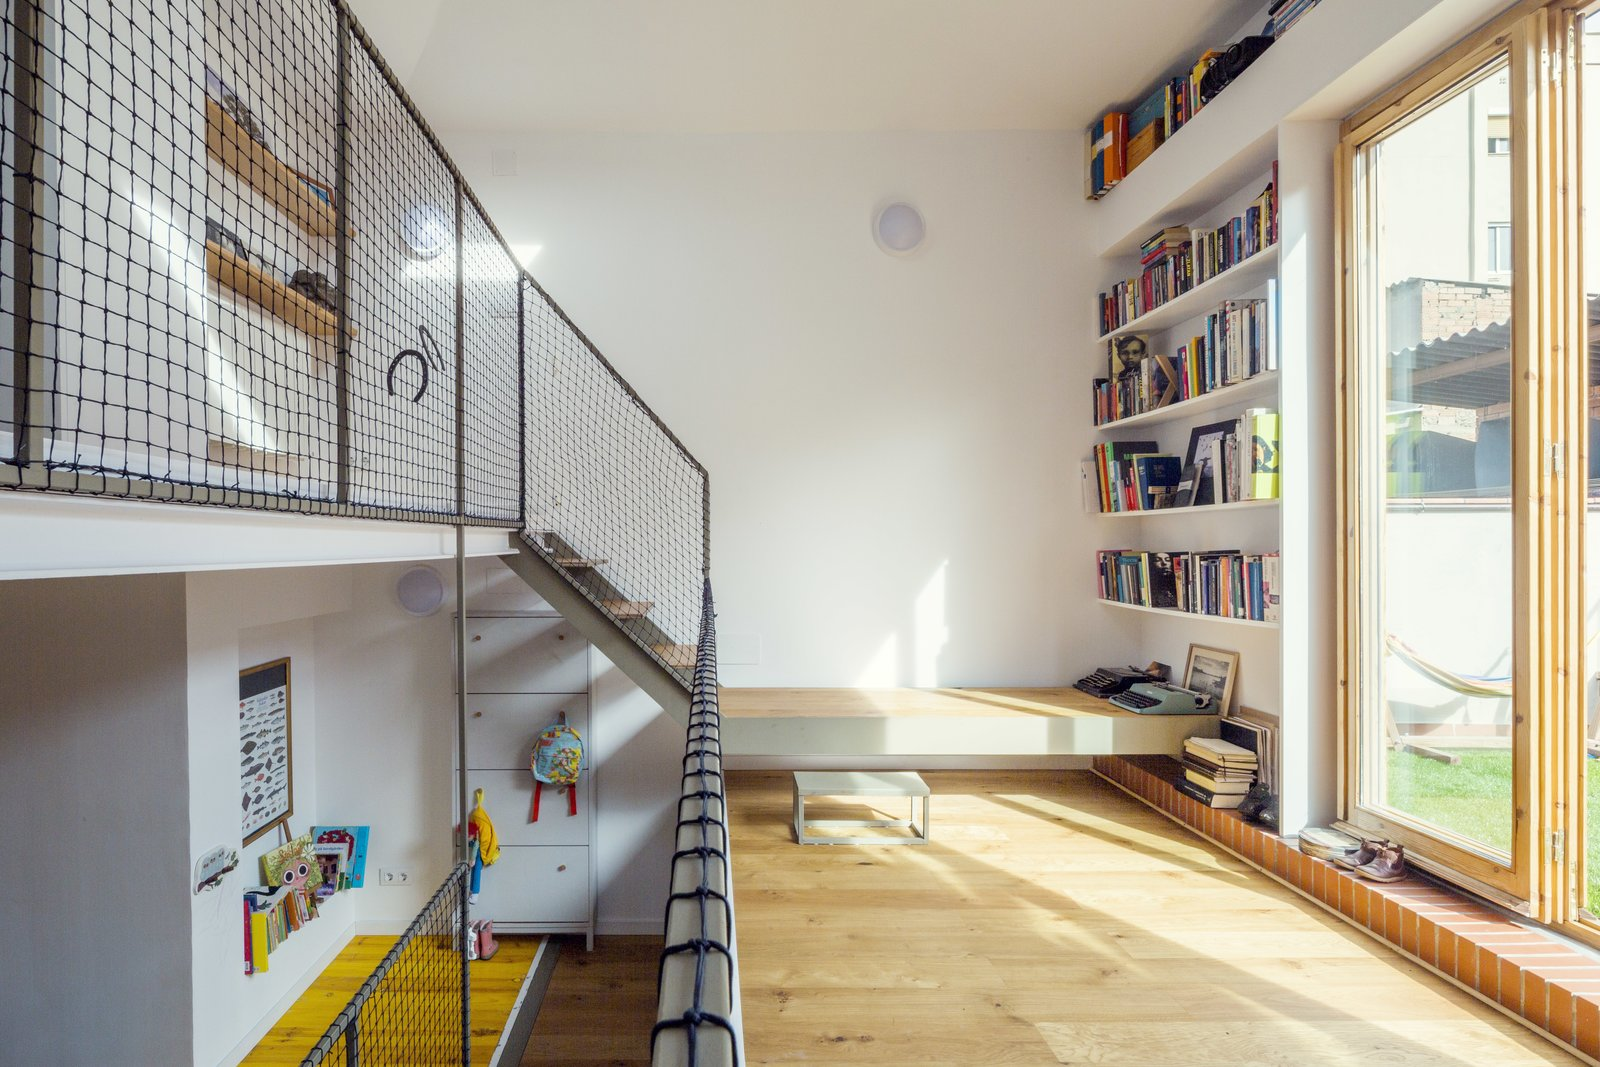 The railings on the middle level are 1.2-by-1.2-inch wrought iron bars and the wood flooring is by Kahrs.  A 16-Foot-Wide Barcelona Row House Gets Creative to Stay Bright and Airy by Alex Vuocolo from Surrounded on Nearly All Sides? These Homes Tackled Tough Sites and Won